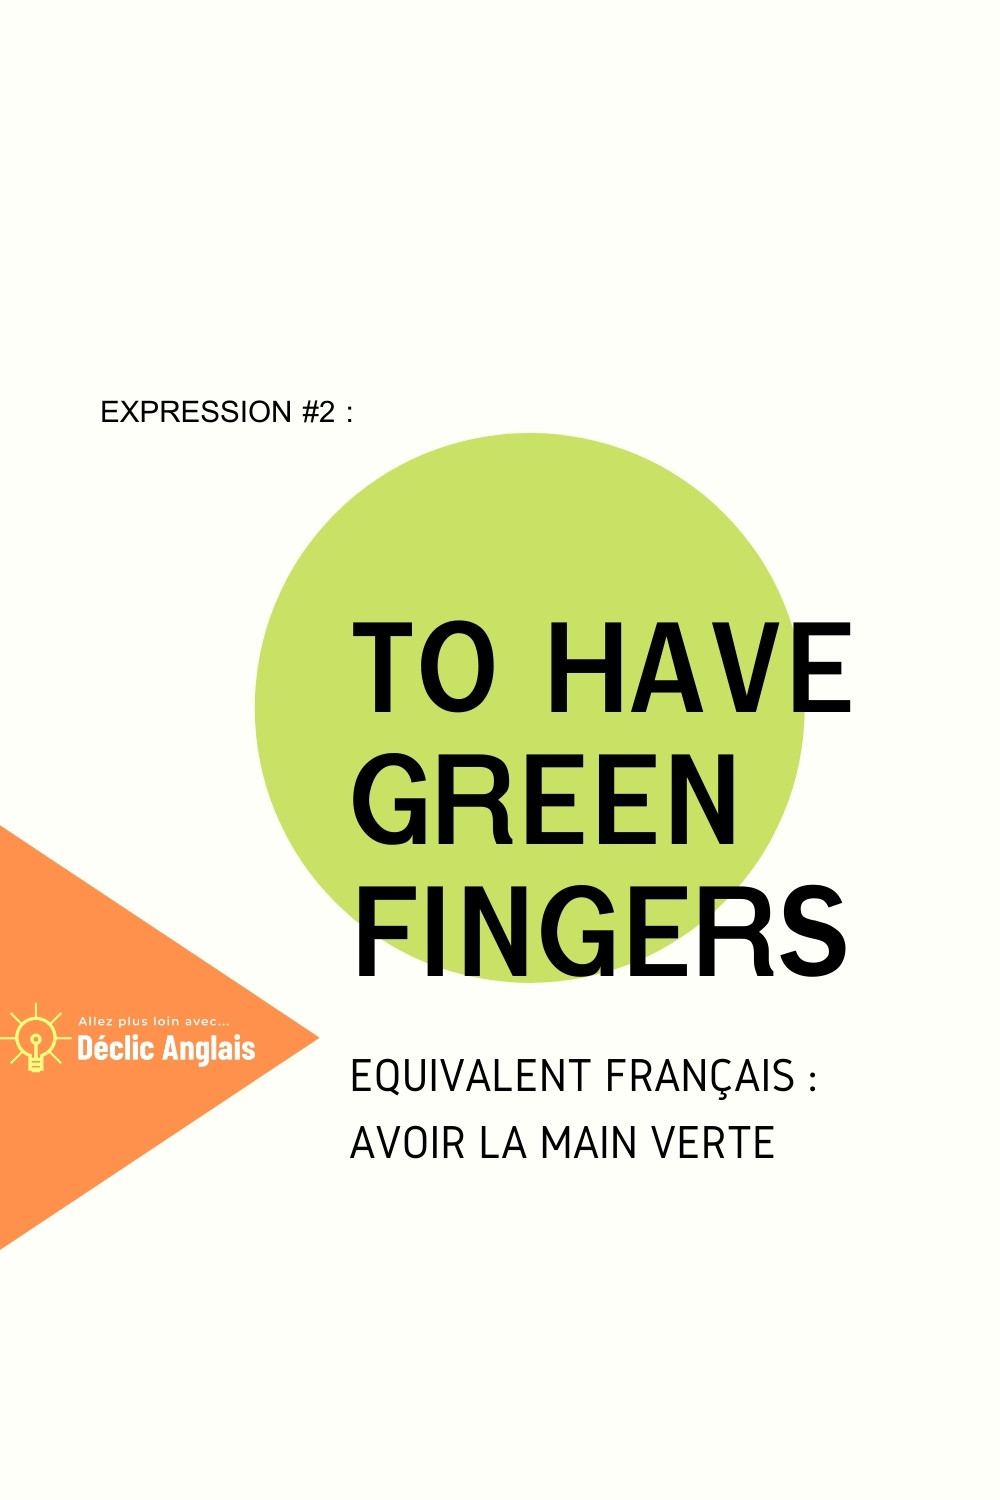 English-expression-to-have-green-fingers-explained-in-french